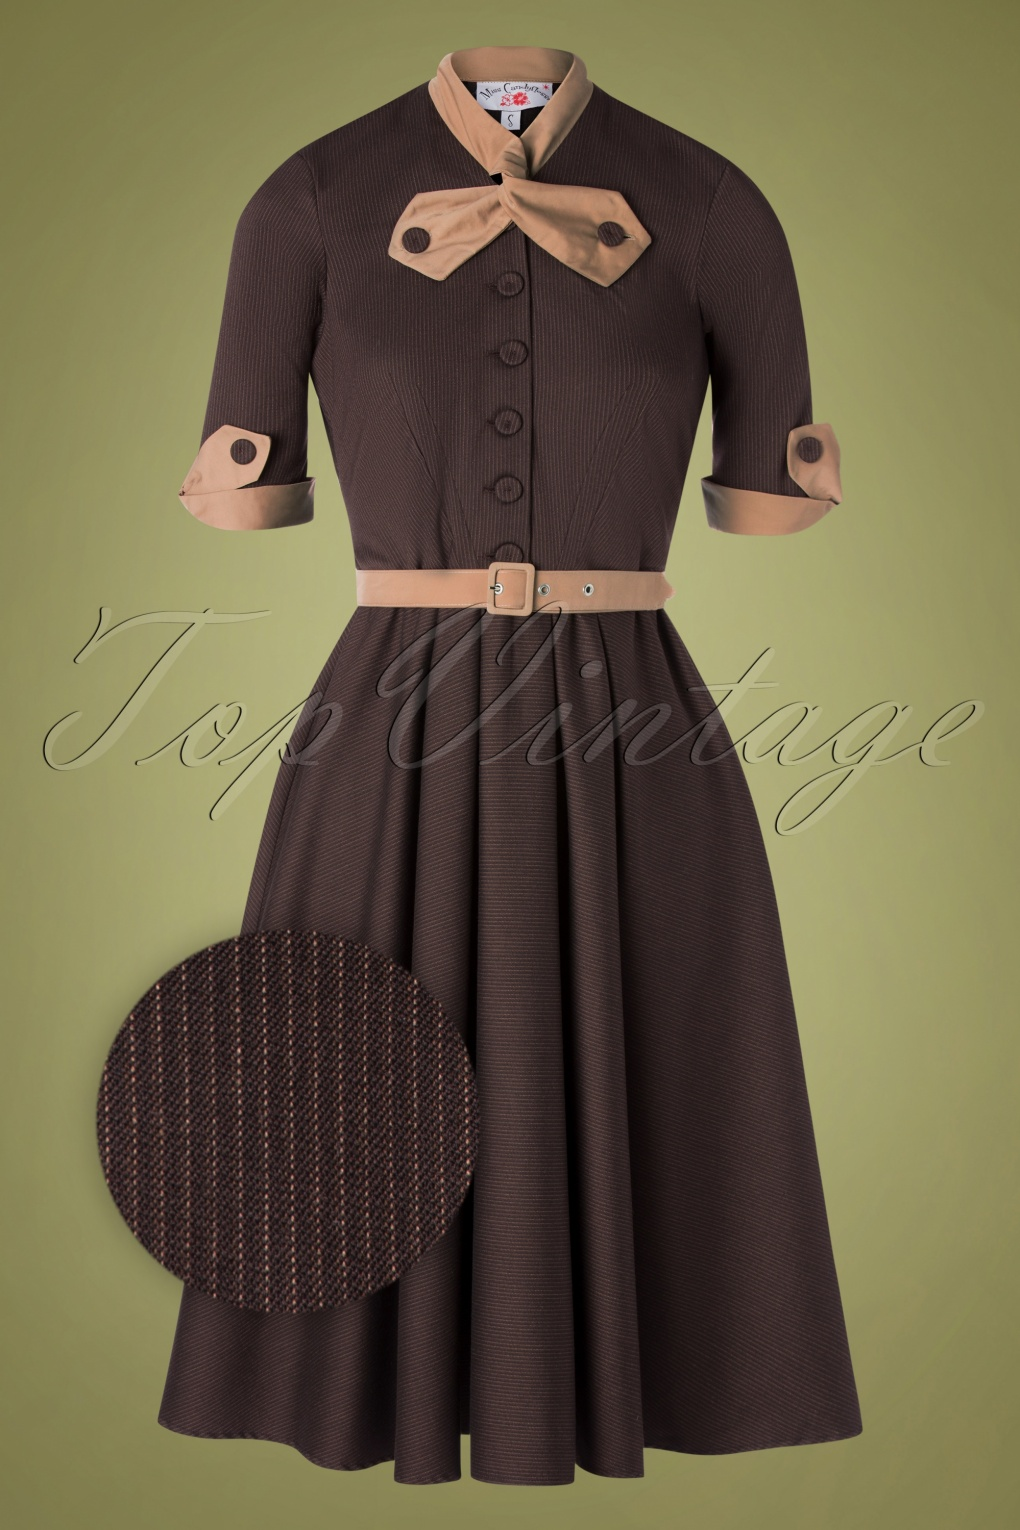 Swing Dance Clothing You Can Dance In 40s Lea Dora Swing Dress in Brown £101.02 AT vintagedancer.com